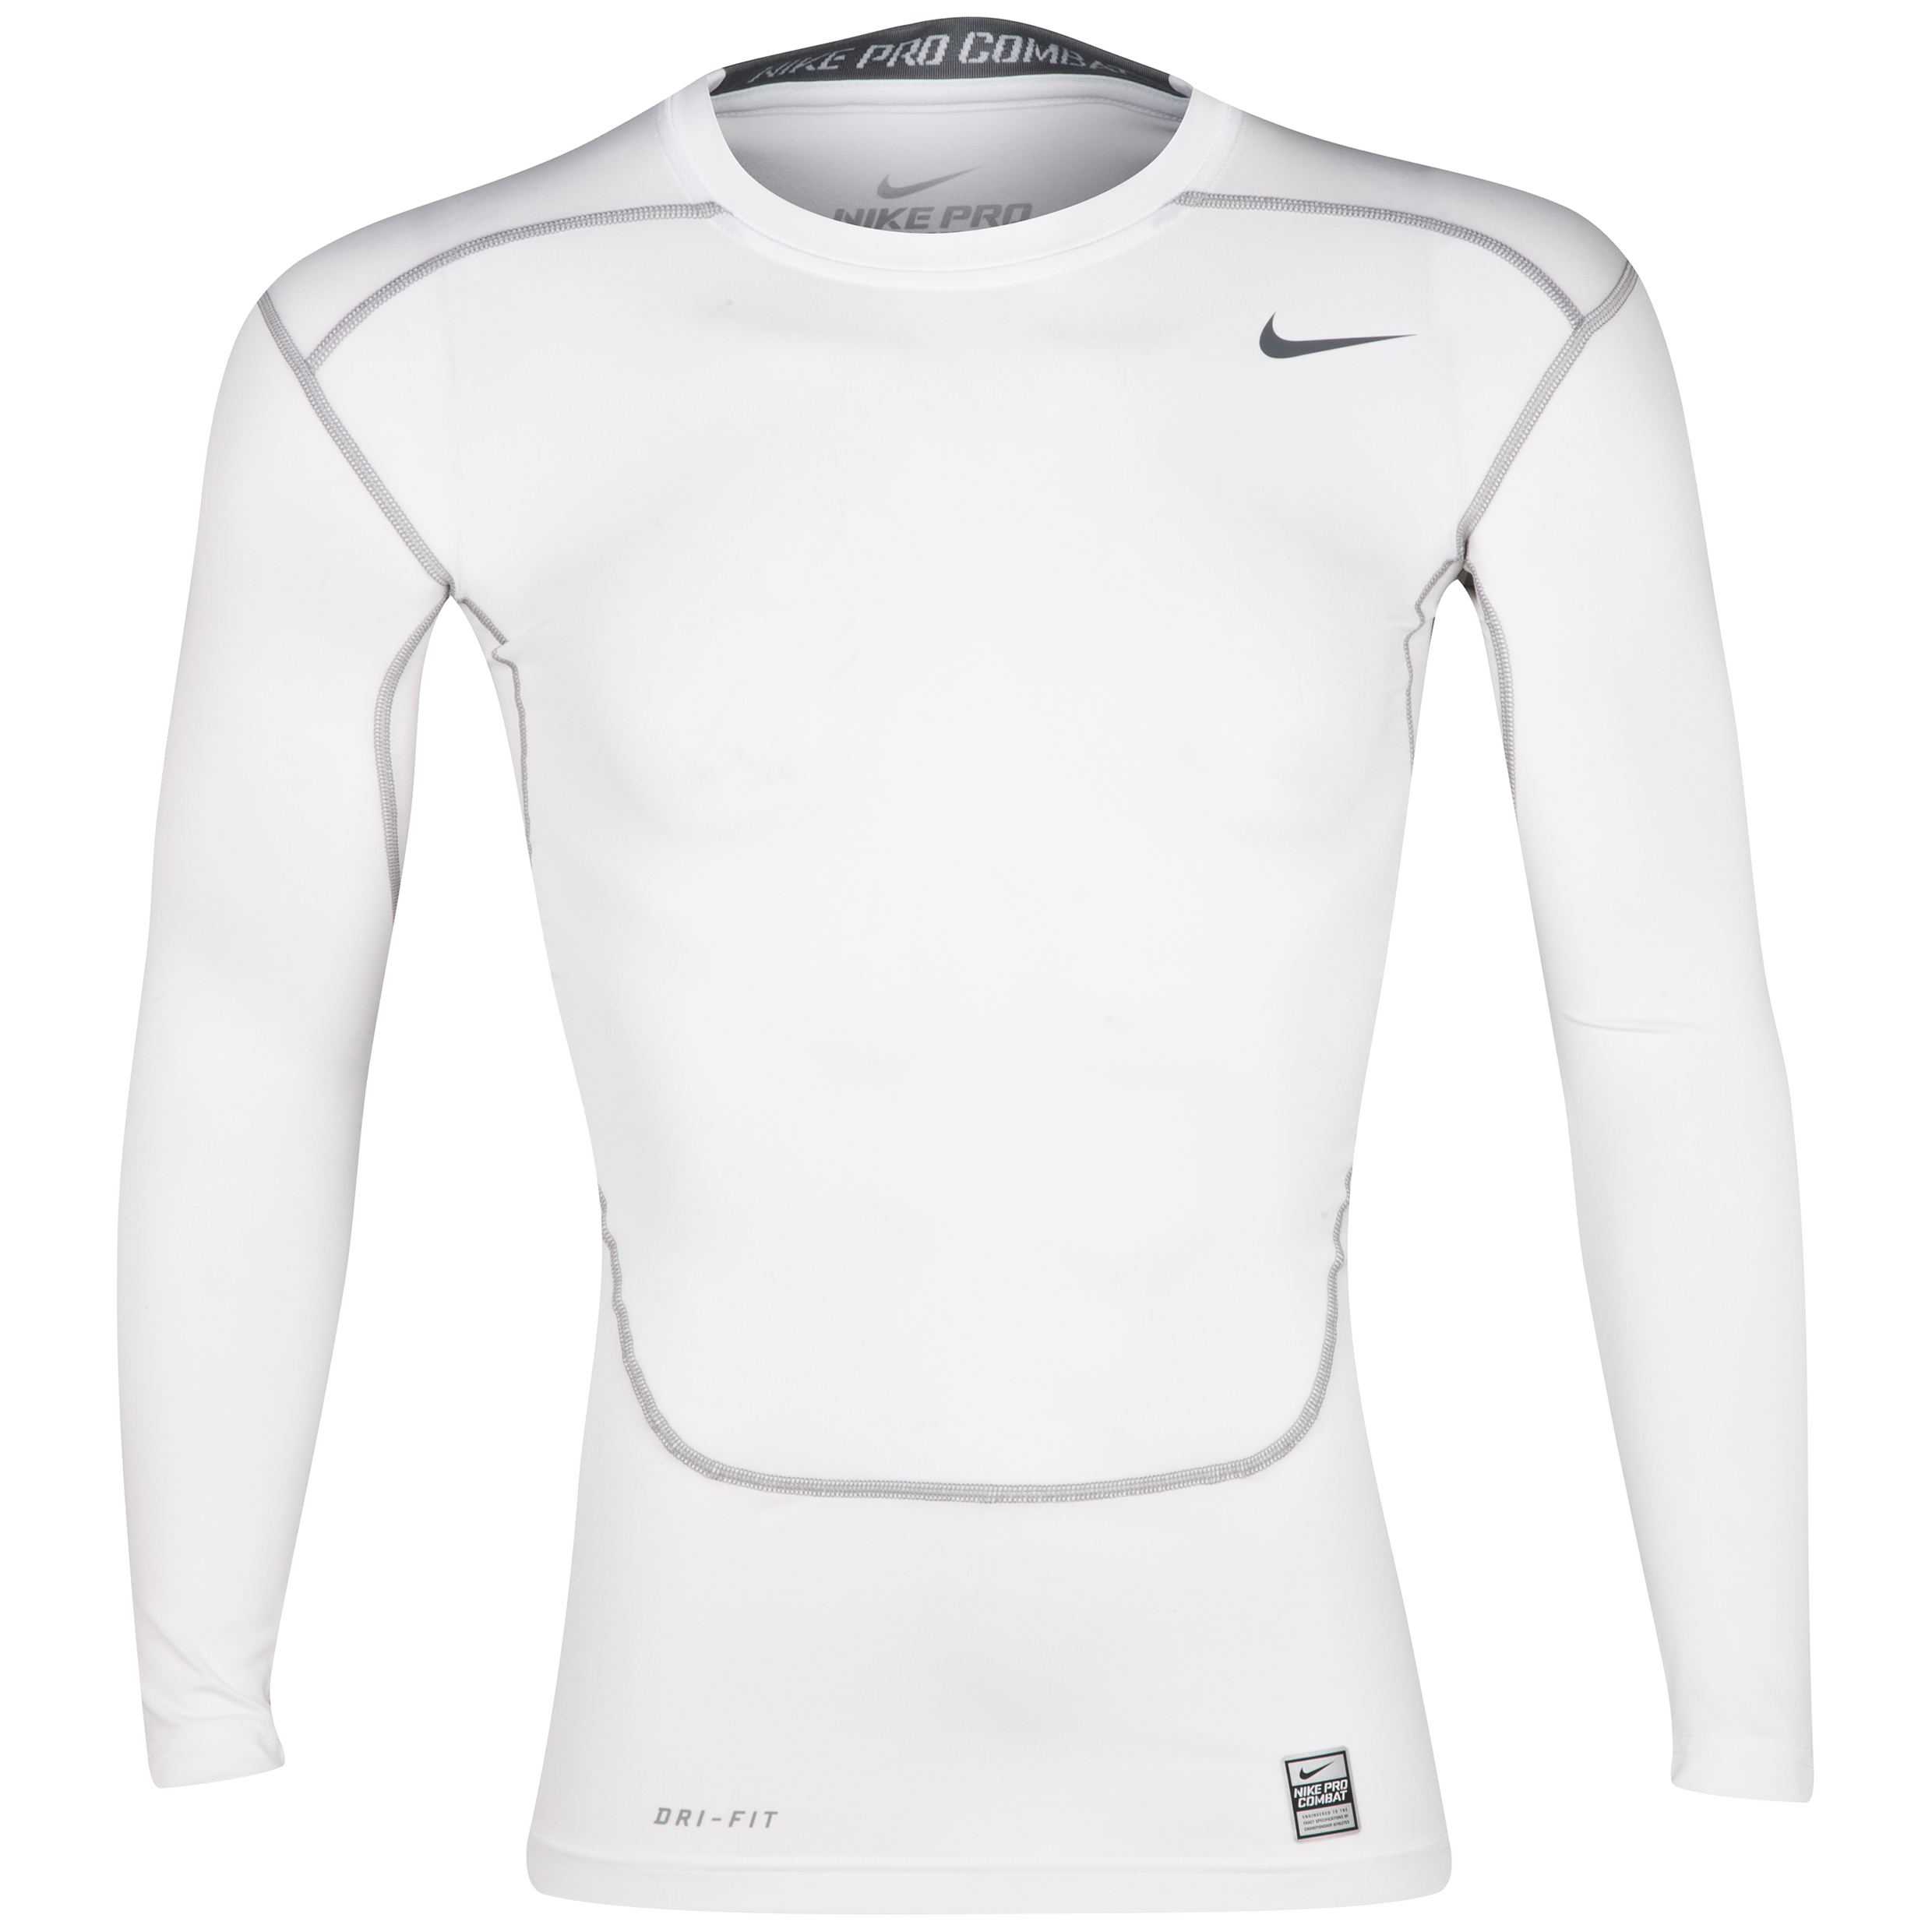 Nike Pro Combat Core Base Layer Top - Long Sleeve White